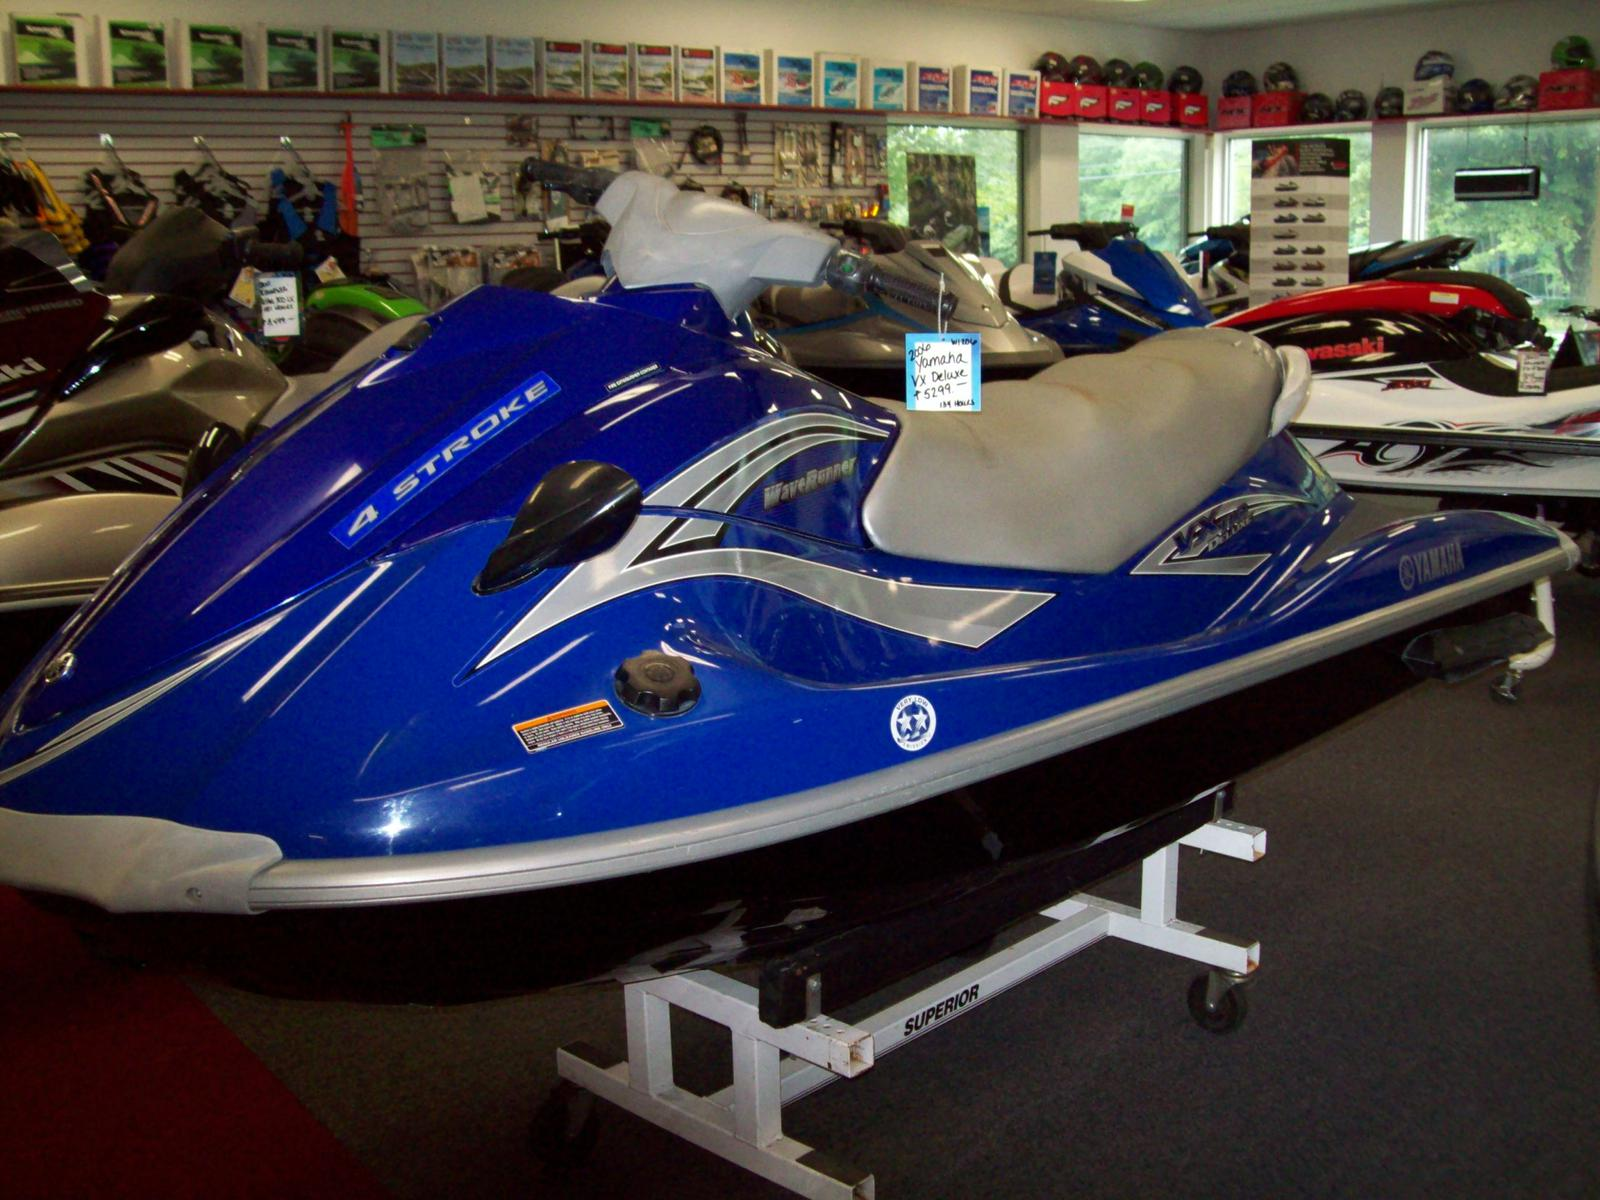 2006 Yamaha 2006 VX110 Deluxe for sale in North Dartmouth MA